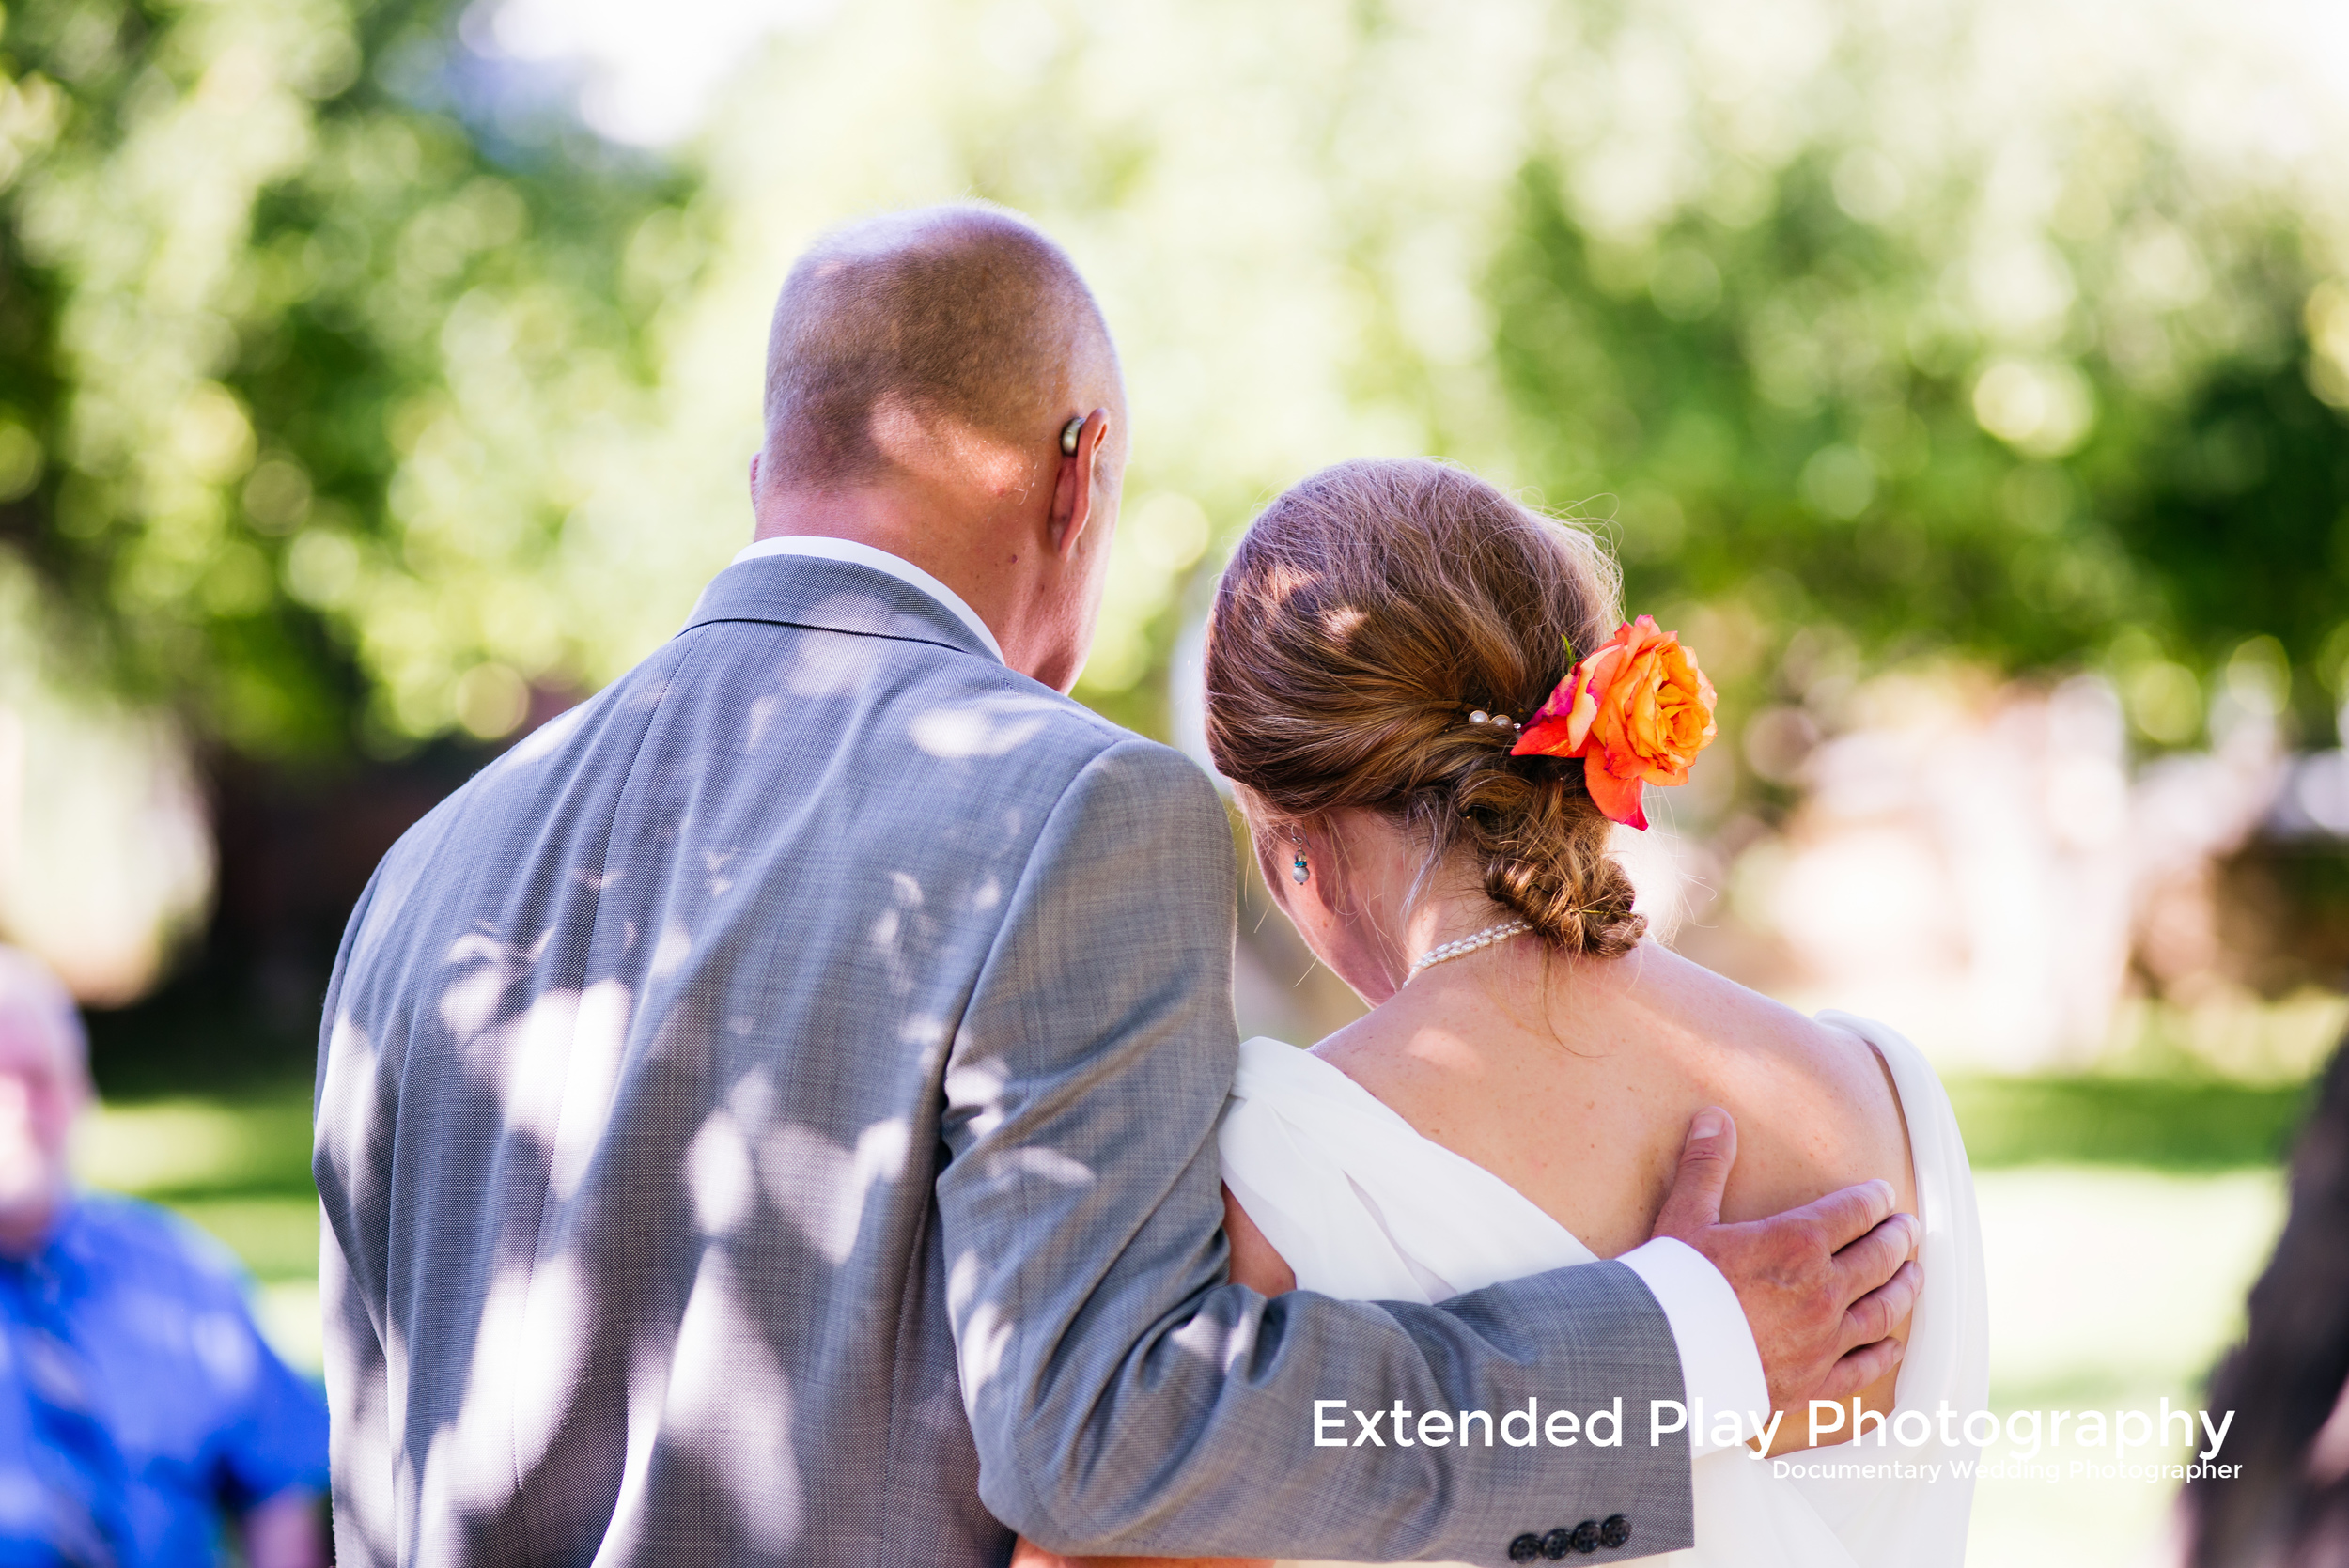 Extended Play Photography Chimayo Wedding-17.JPG